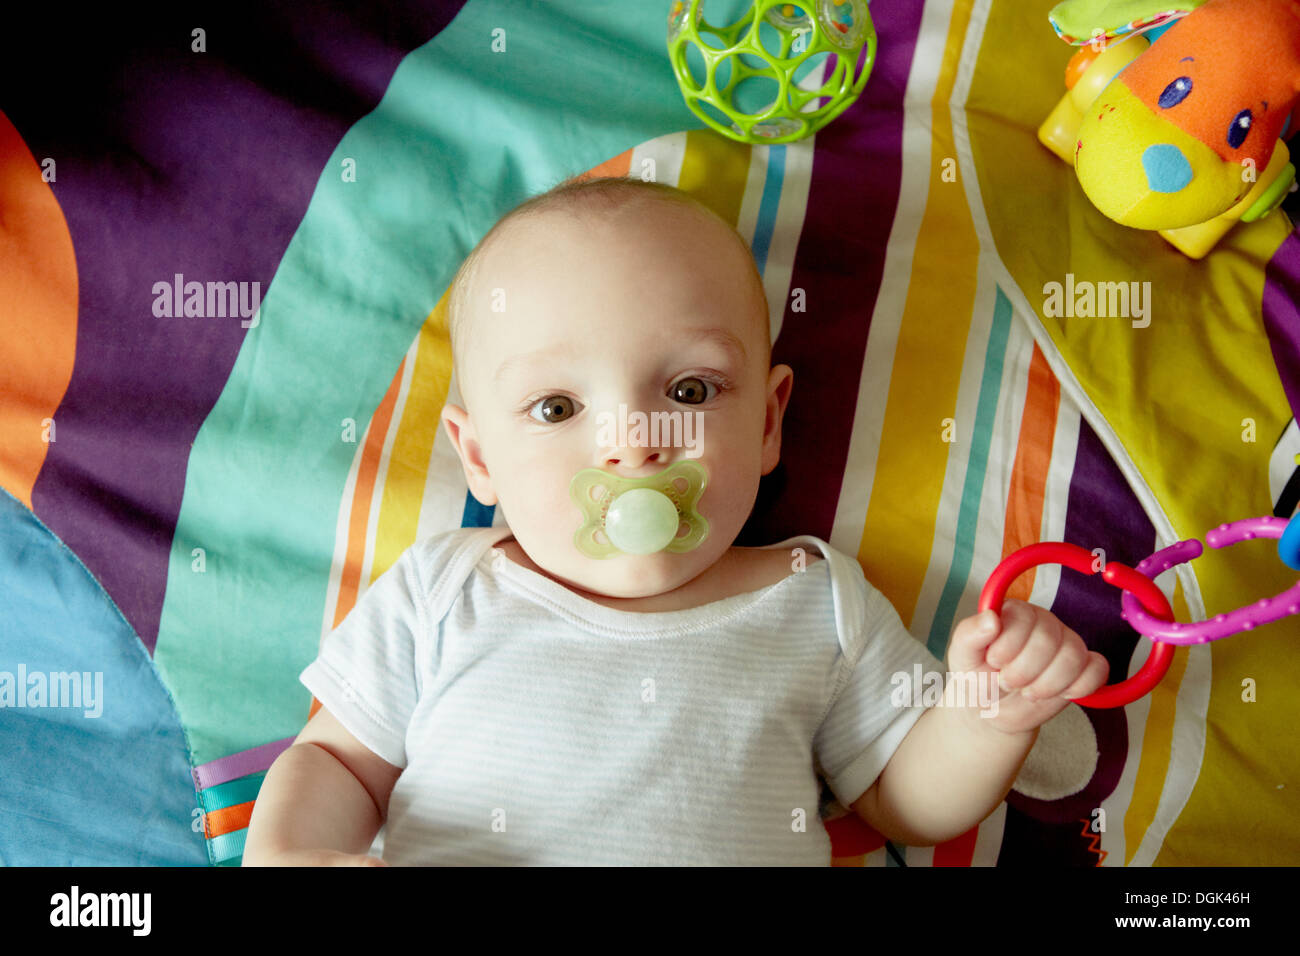 Baby boy lying on blanket sucking pacifier and playing with toys - Stock Image